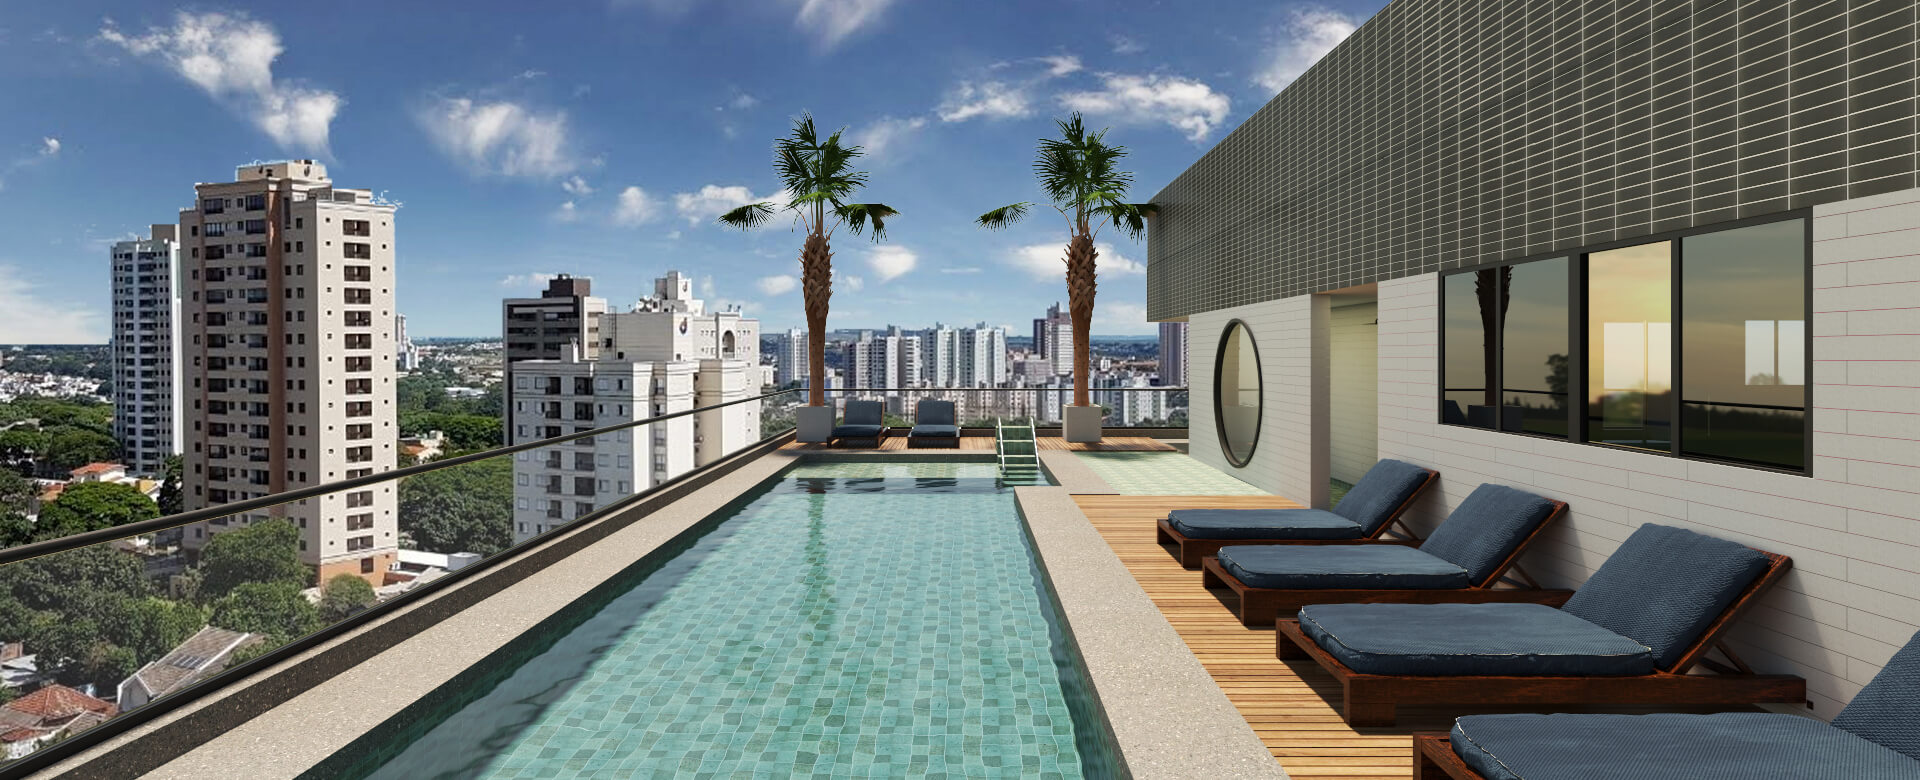 Residencial One, foto 1